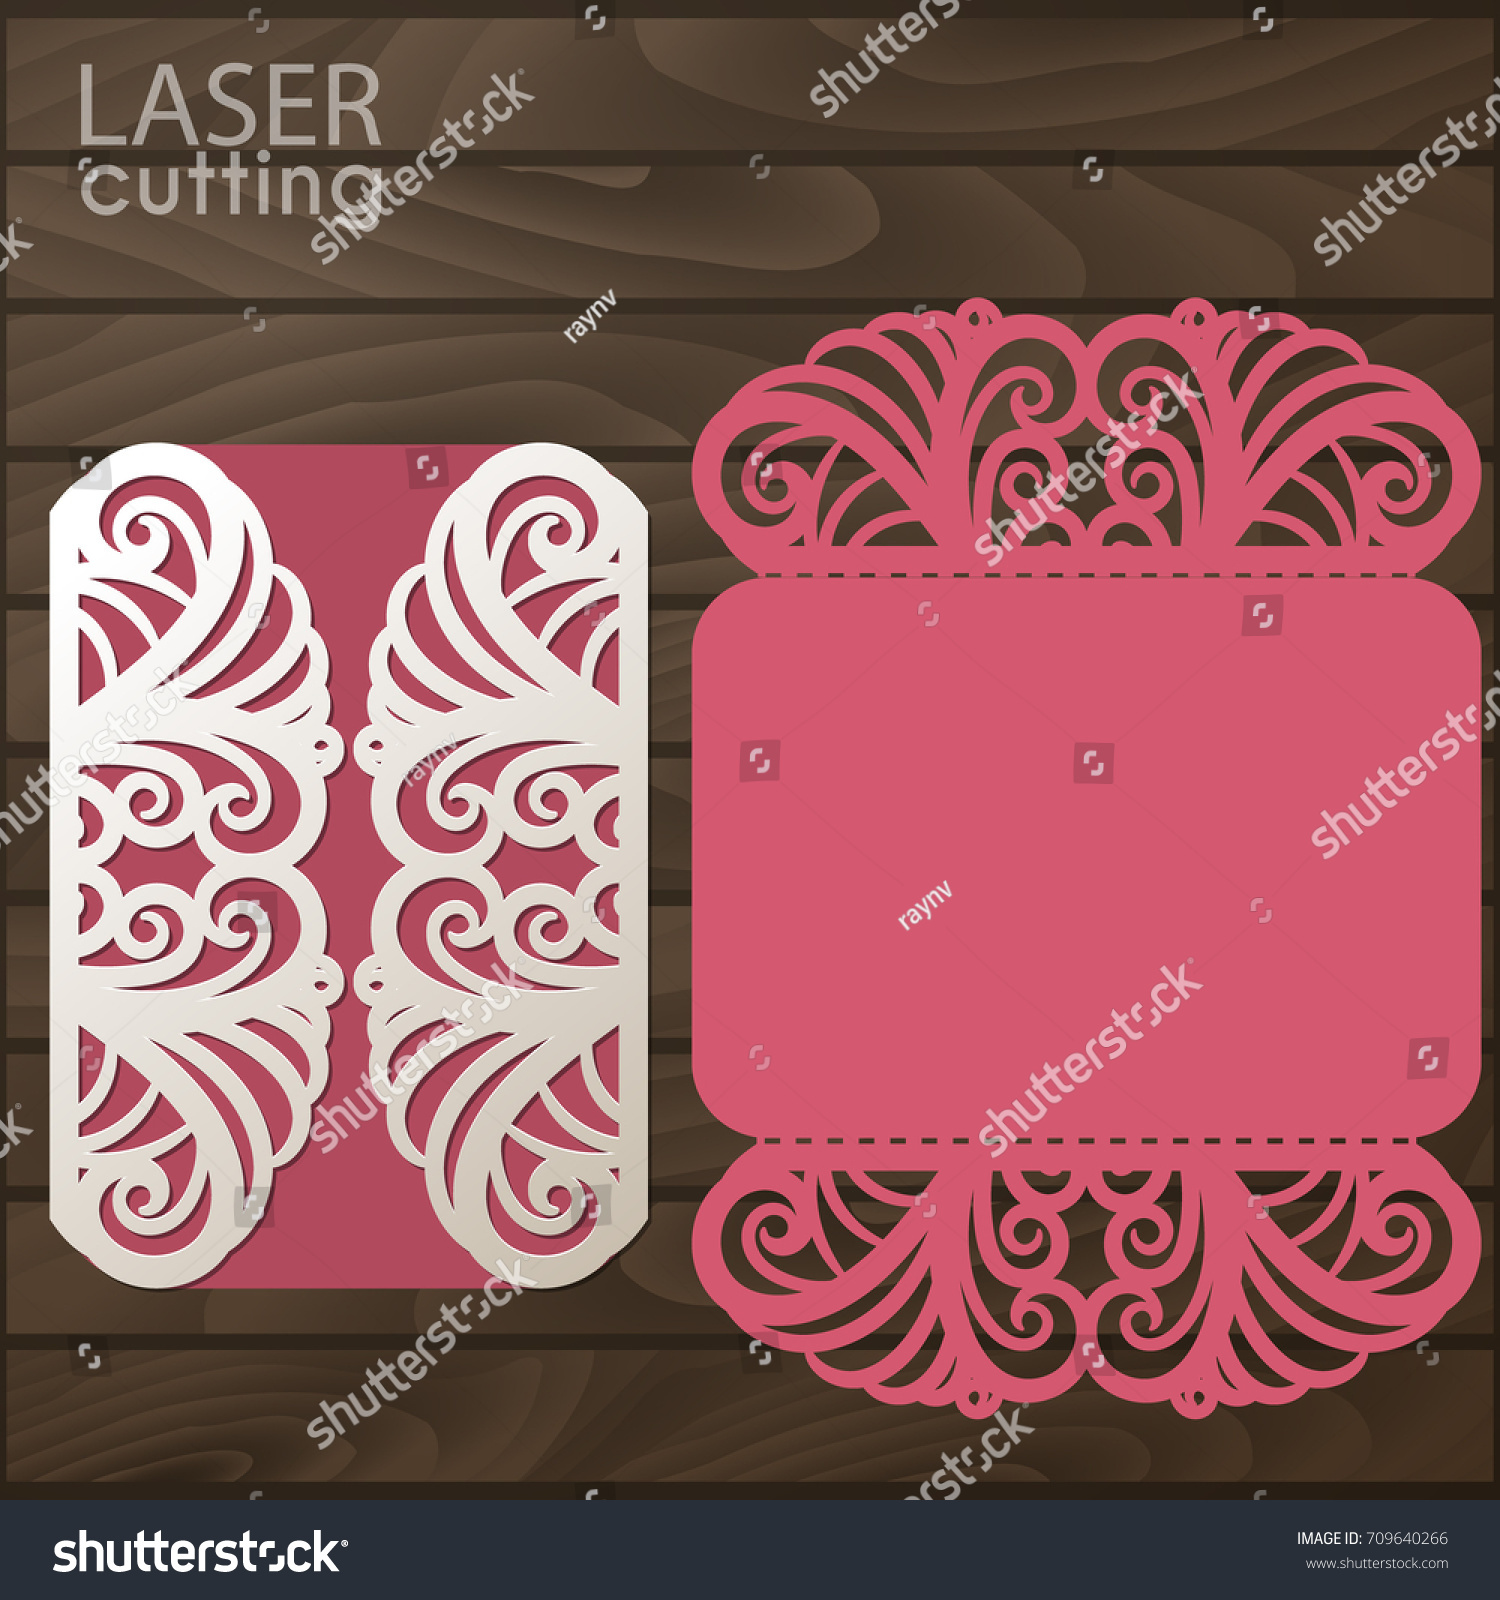 Laser Cut Wedding Invitation Card Template Stock Vector HD (Royalty ...